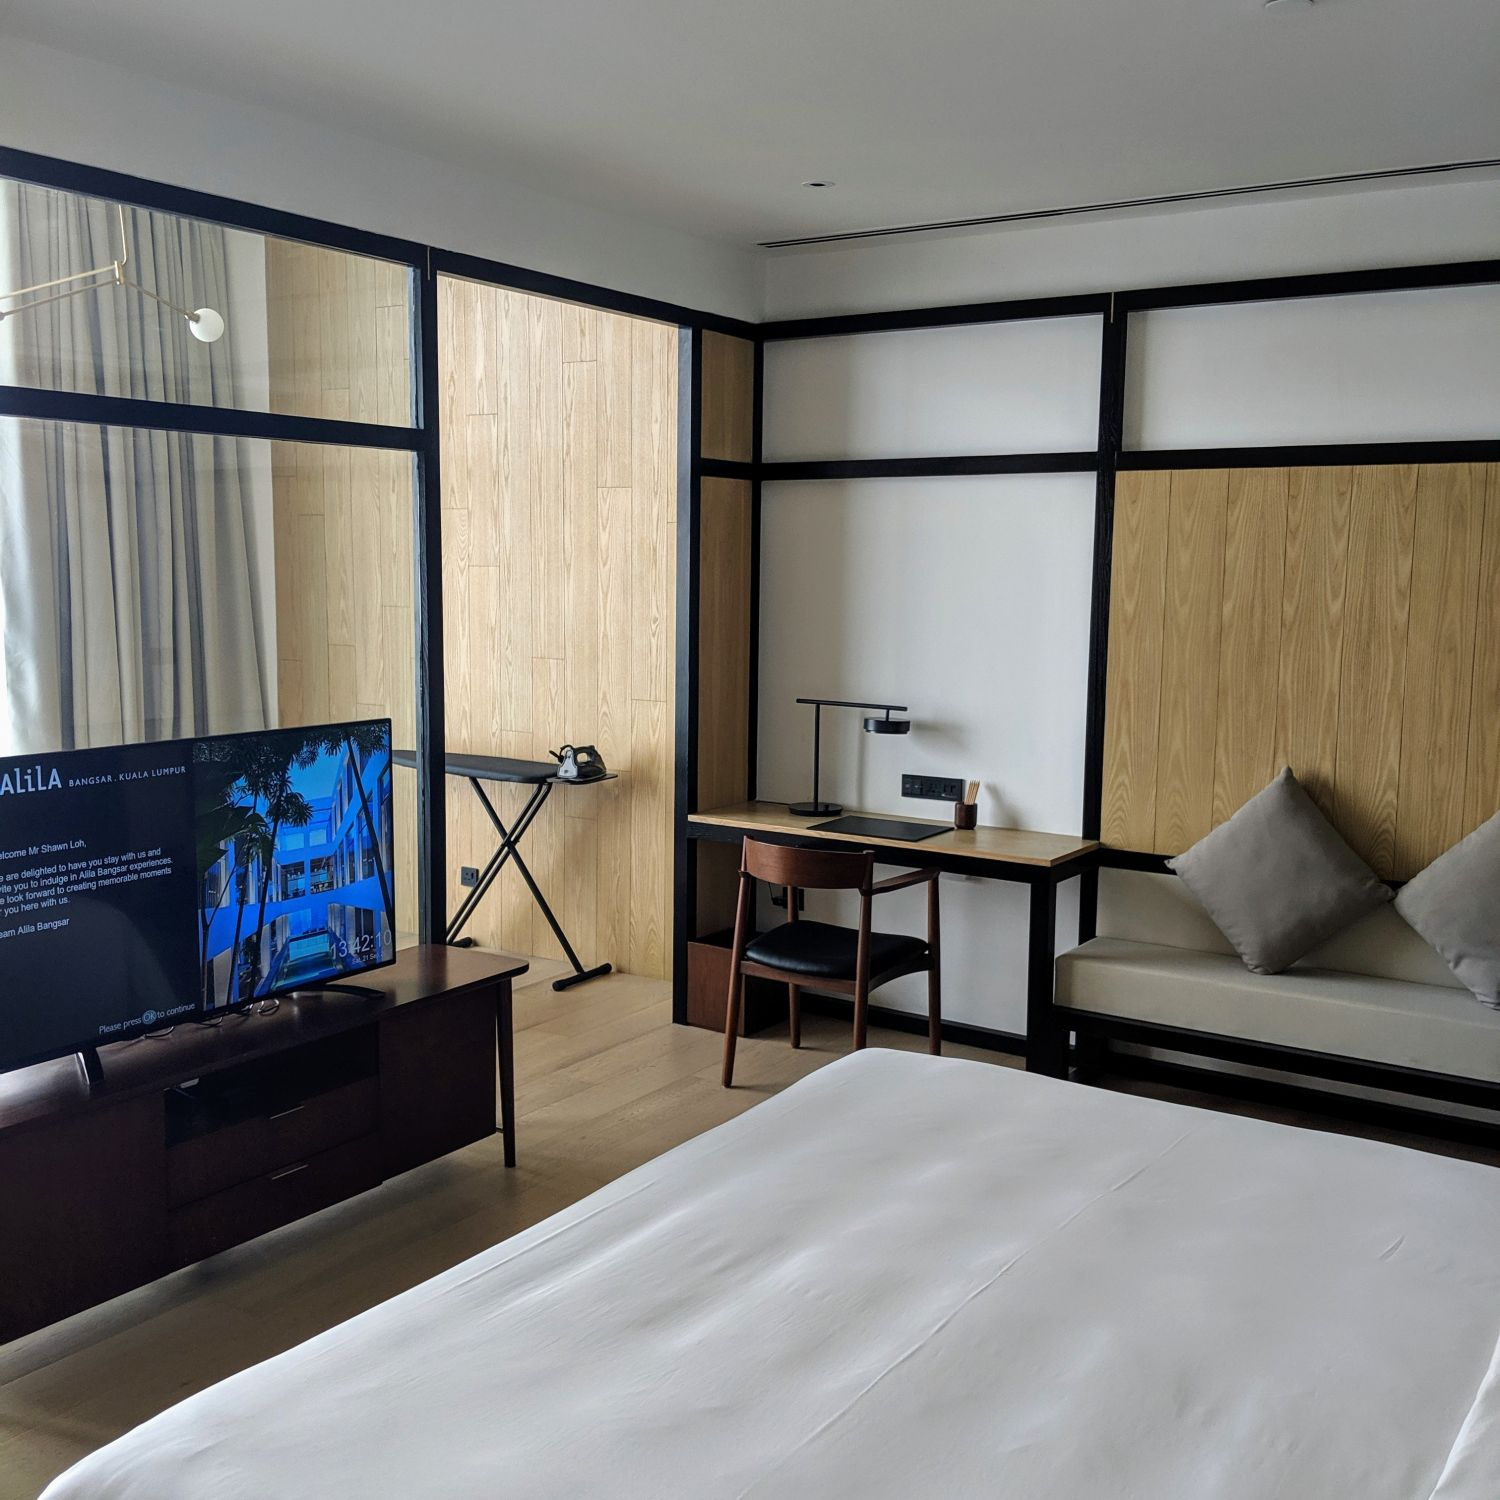 alila bangsar king bed deluxe bedroom